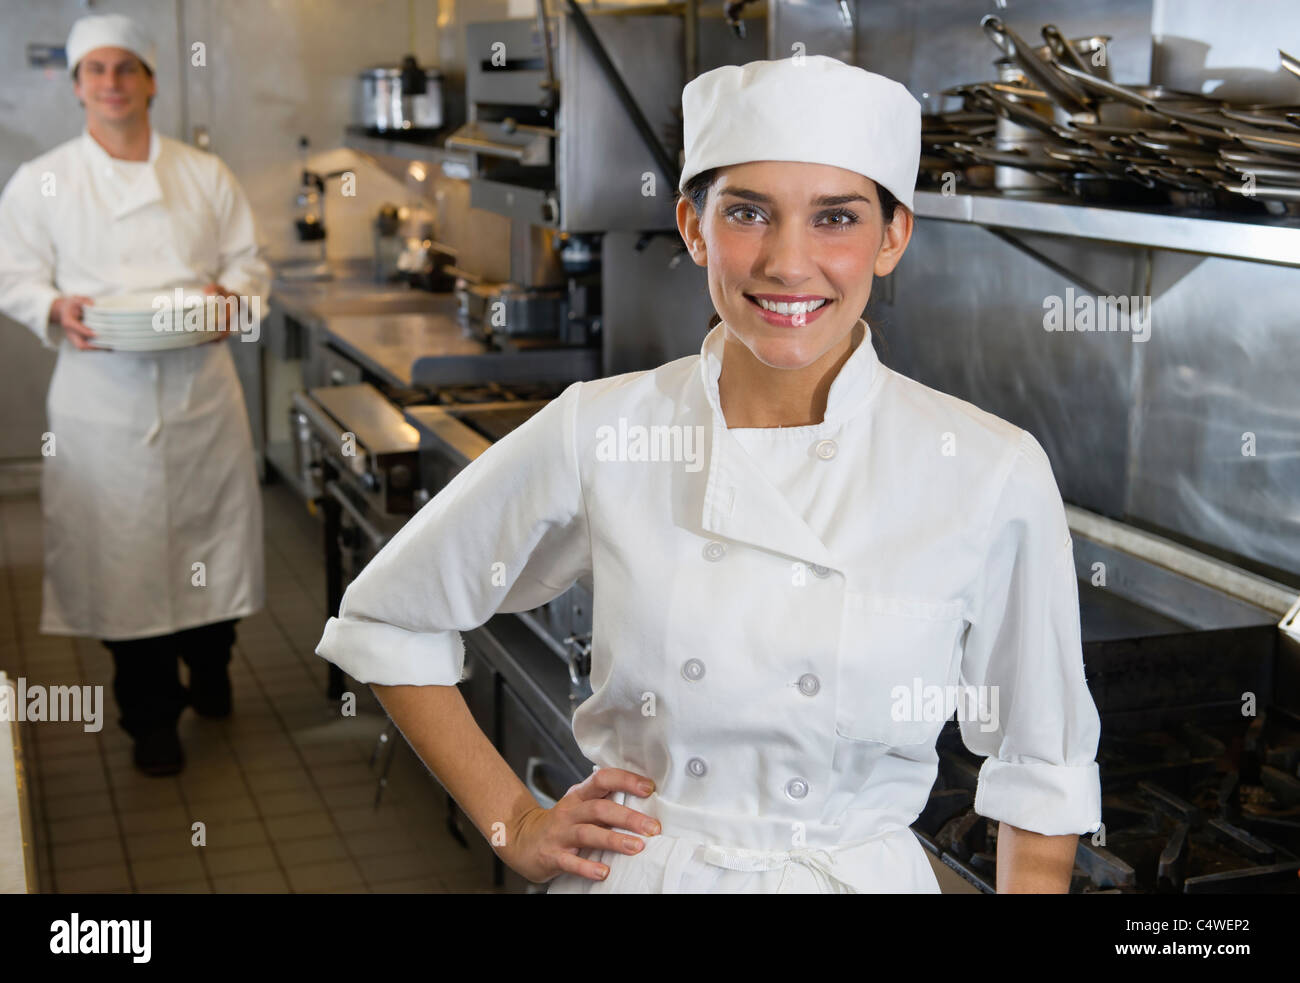 USA,New York,New York City,Chef and cook in commercial kitchen Stock Photo